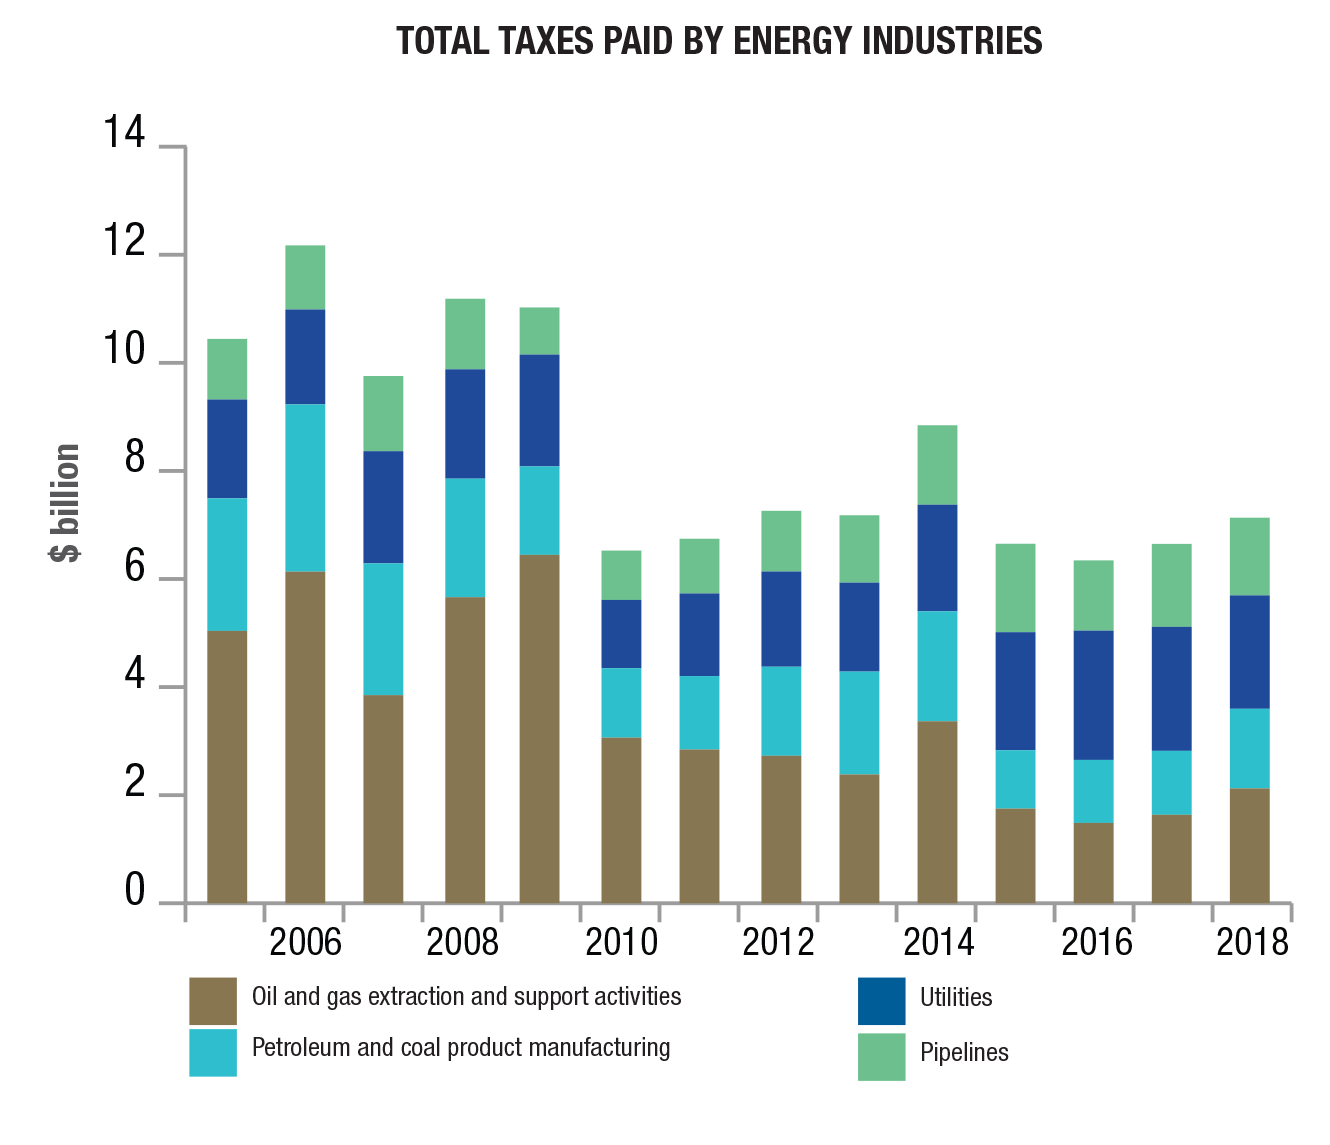 Total taxes paid by energy industries